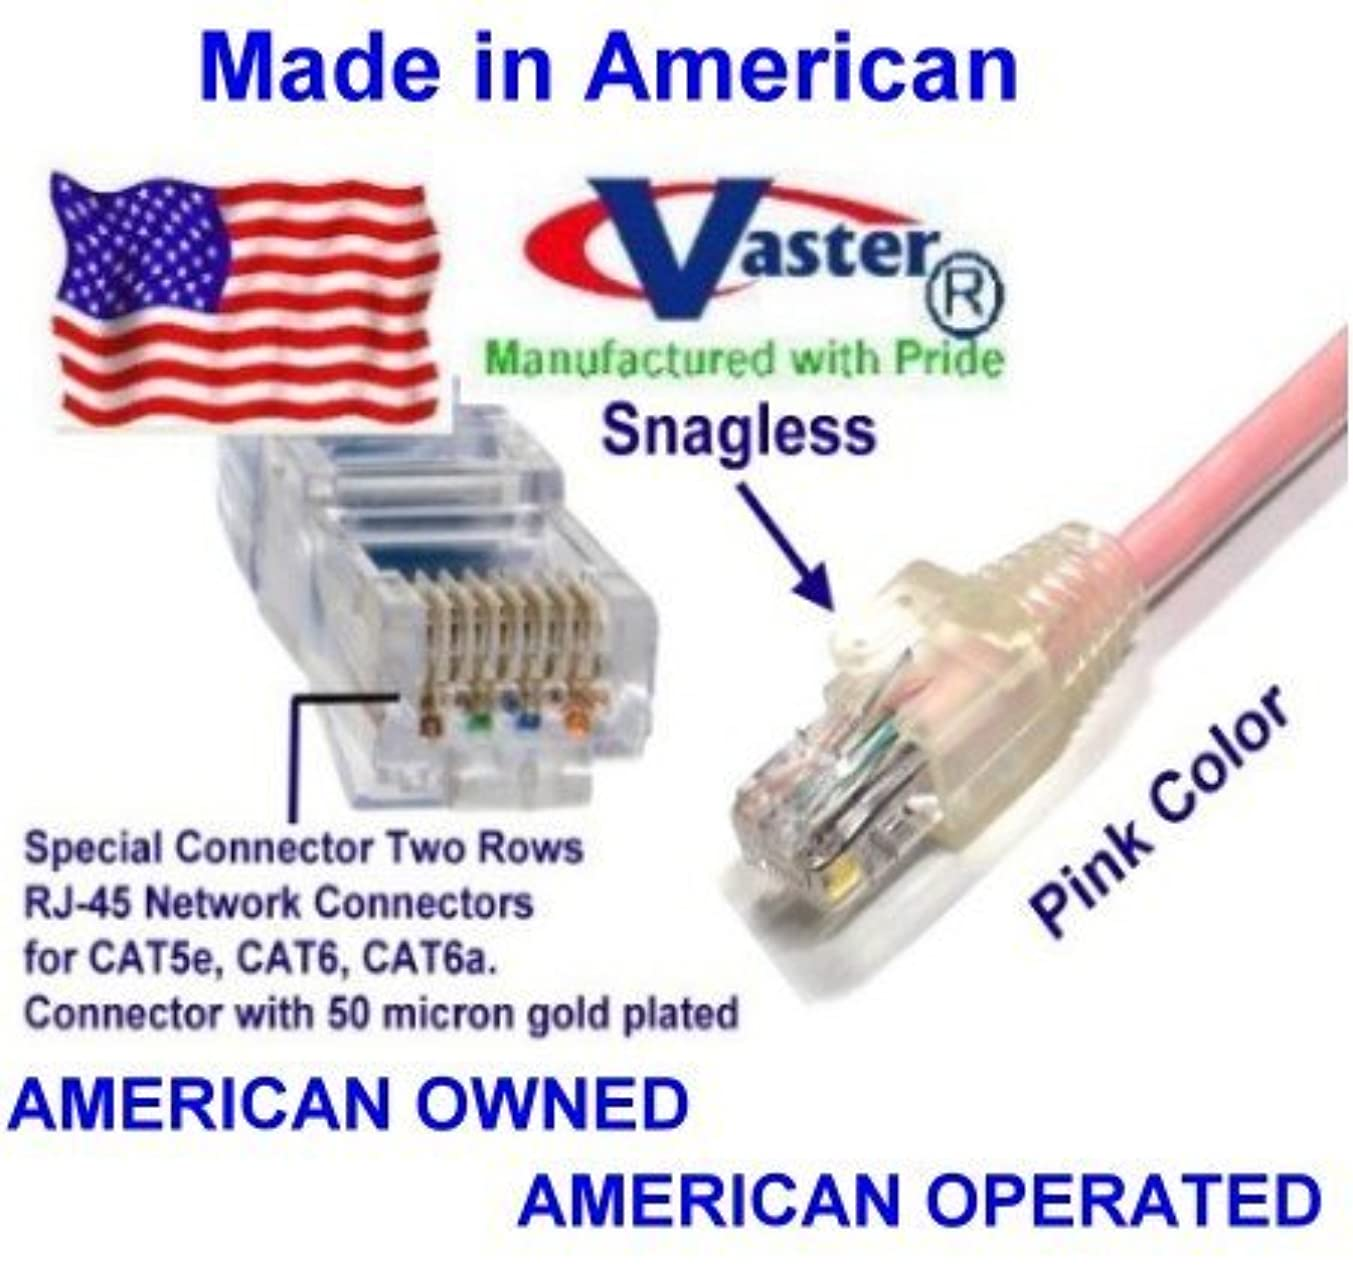 SuperEcable - USA-0676 - 40 Ft UTP Cat5e - Made in USA - PINK – UL 24Awg Pure Copper – Ethernet Network Patch Cable